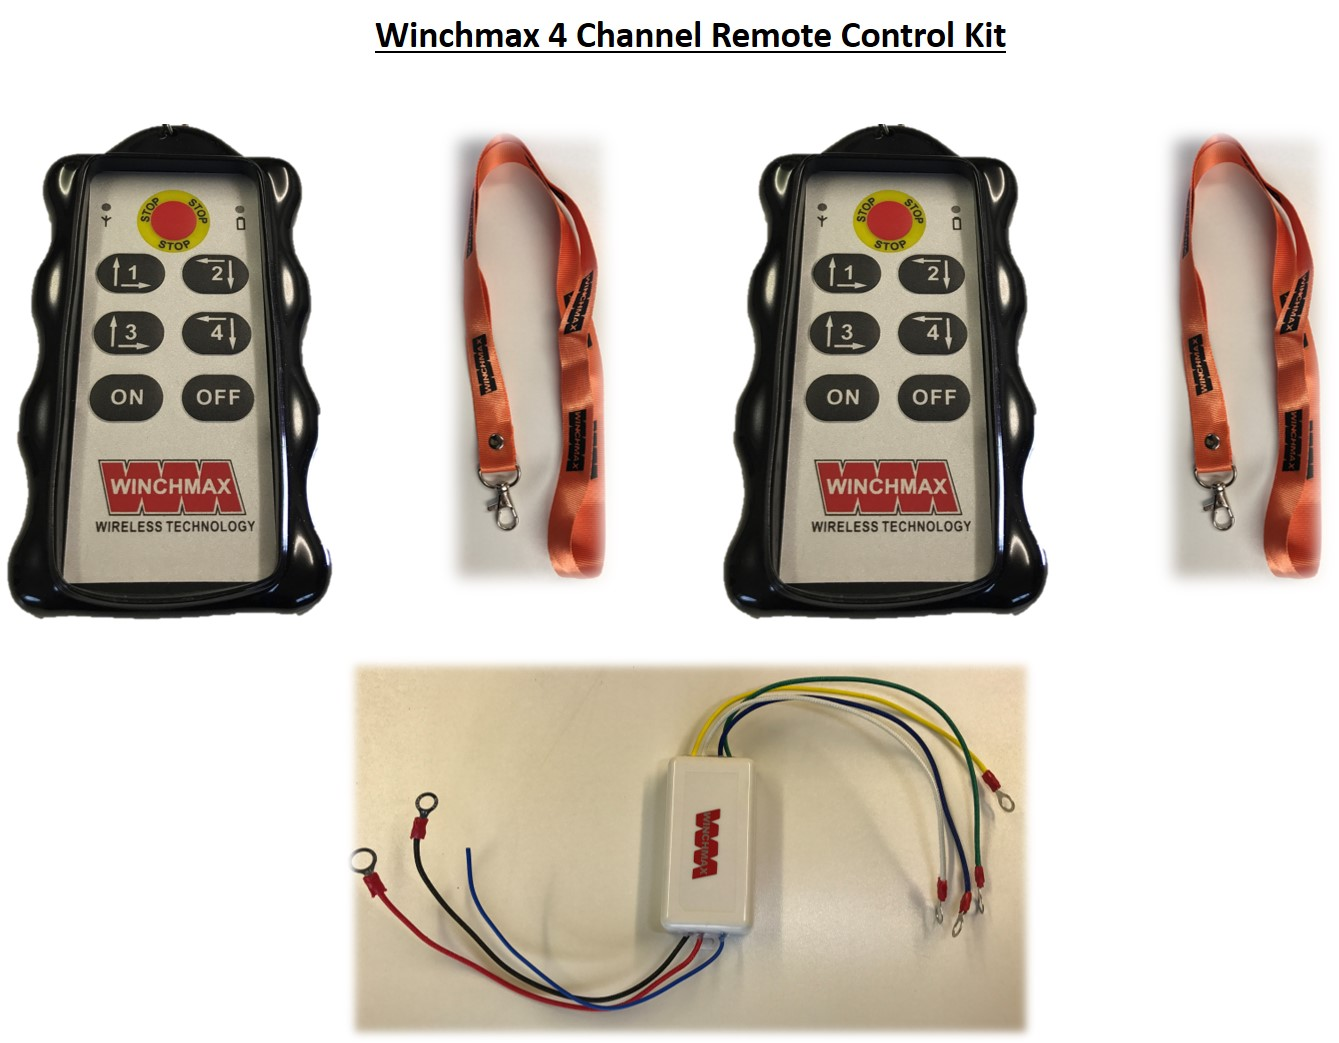 Winch Solenoid 12v Heavy Duty Upgrade Ebay Wiring Diagram Furthermore Ramsey Winchmax 4 X Channel Remote Wireless Twin Handset12 Volt Or 24